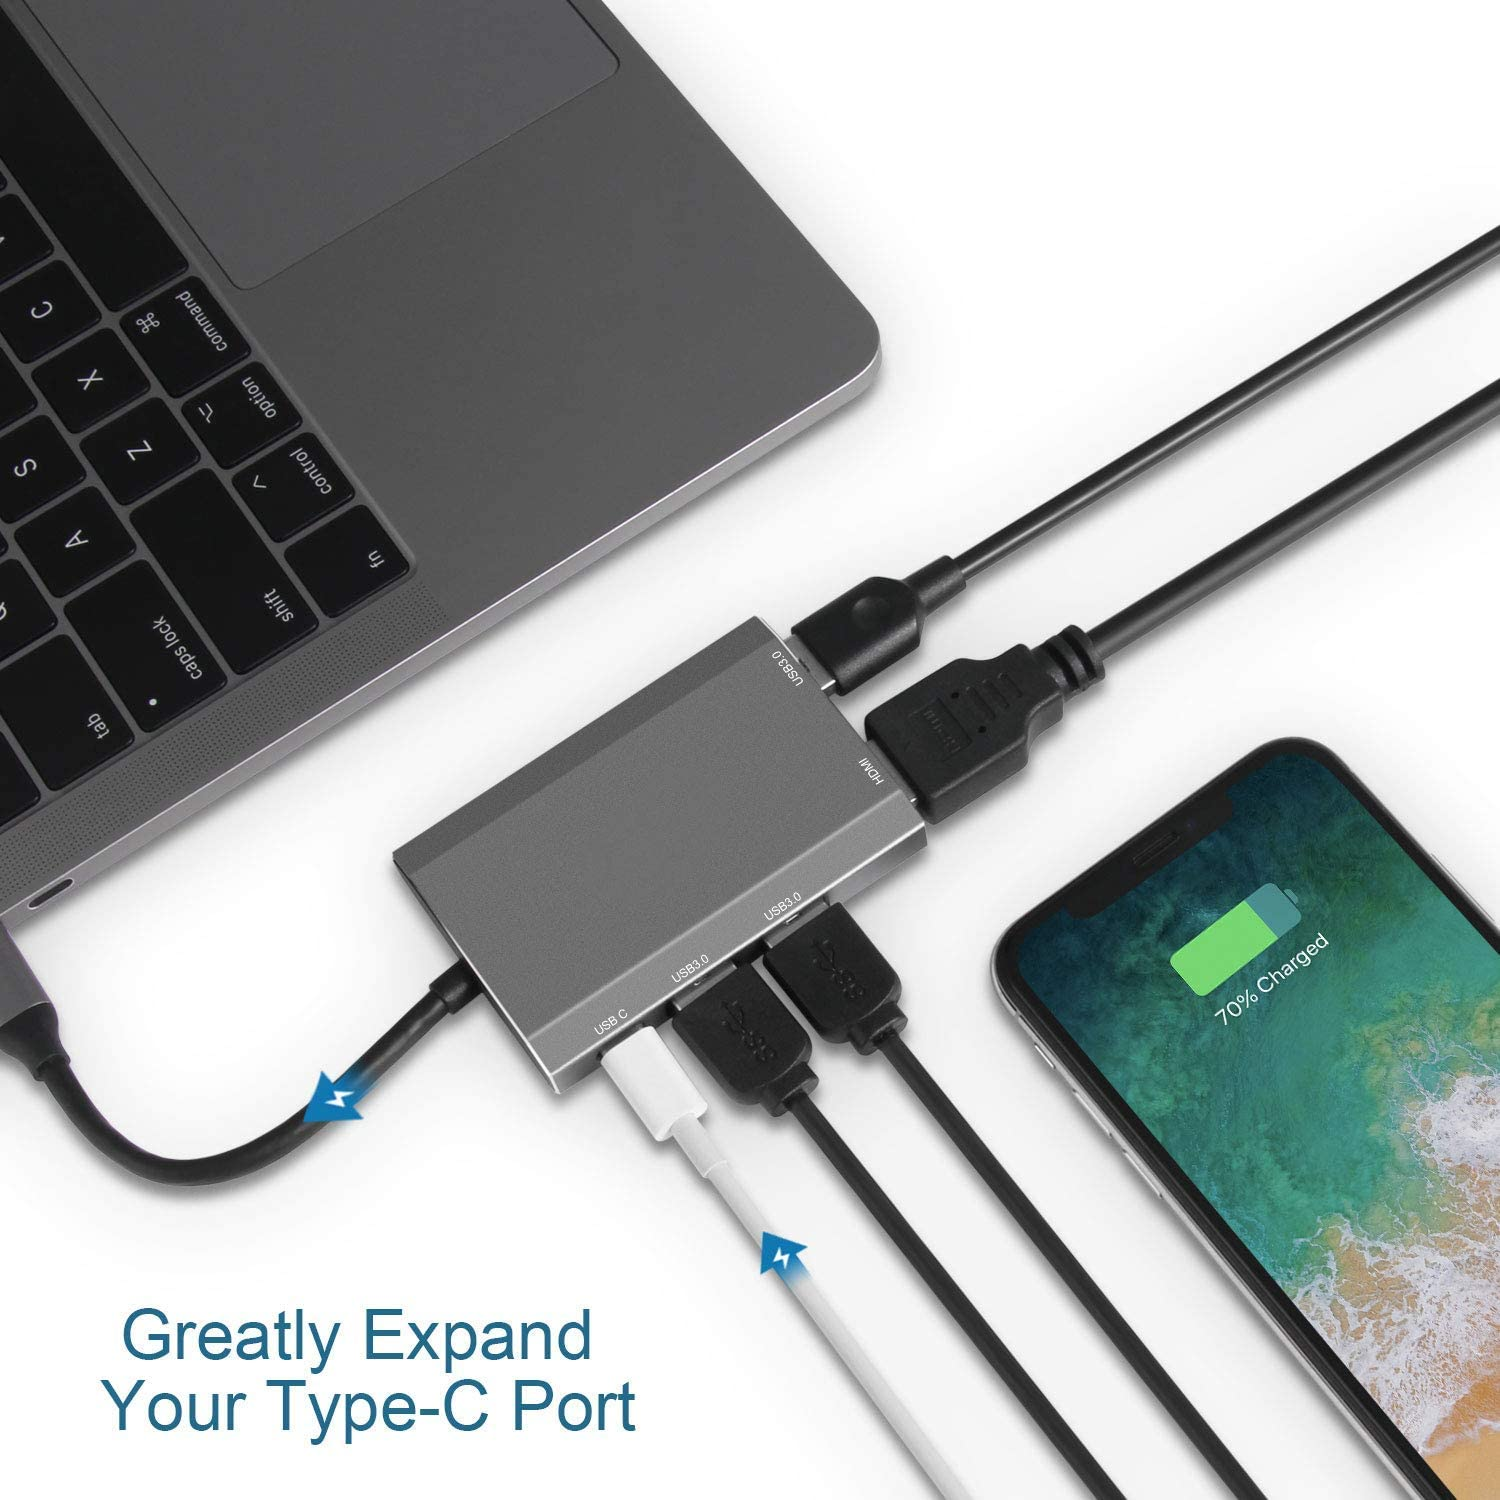 Space Gray 2018 Galaxy S9//S8 and More XPS Type C PD Charging Compatible MacBook//Pro//Air 3 USB to USB 3.0 Ports USB C Hub ChromeBook 5 in 1 USB C Adapter with USB C to HDMI Adapter